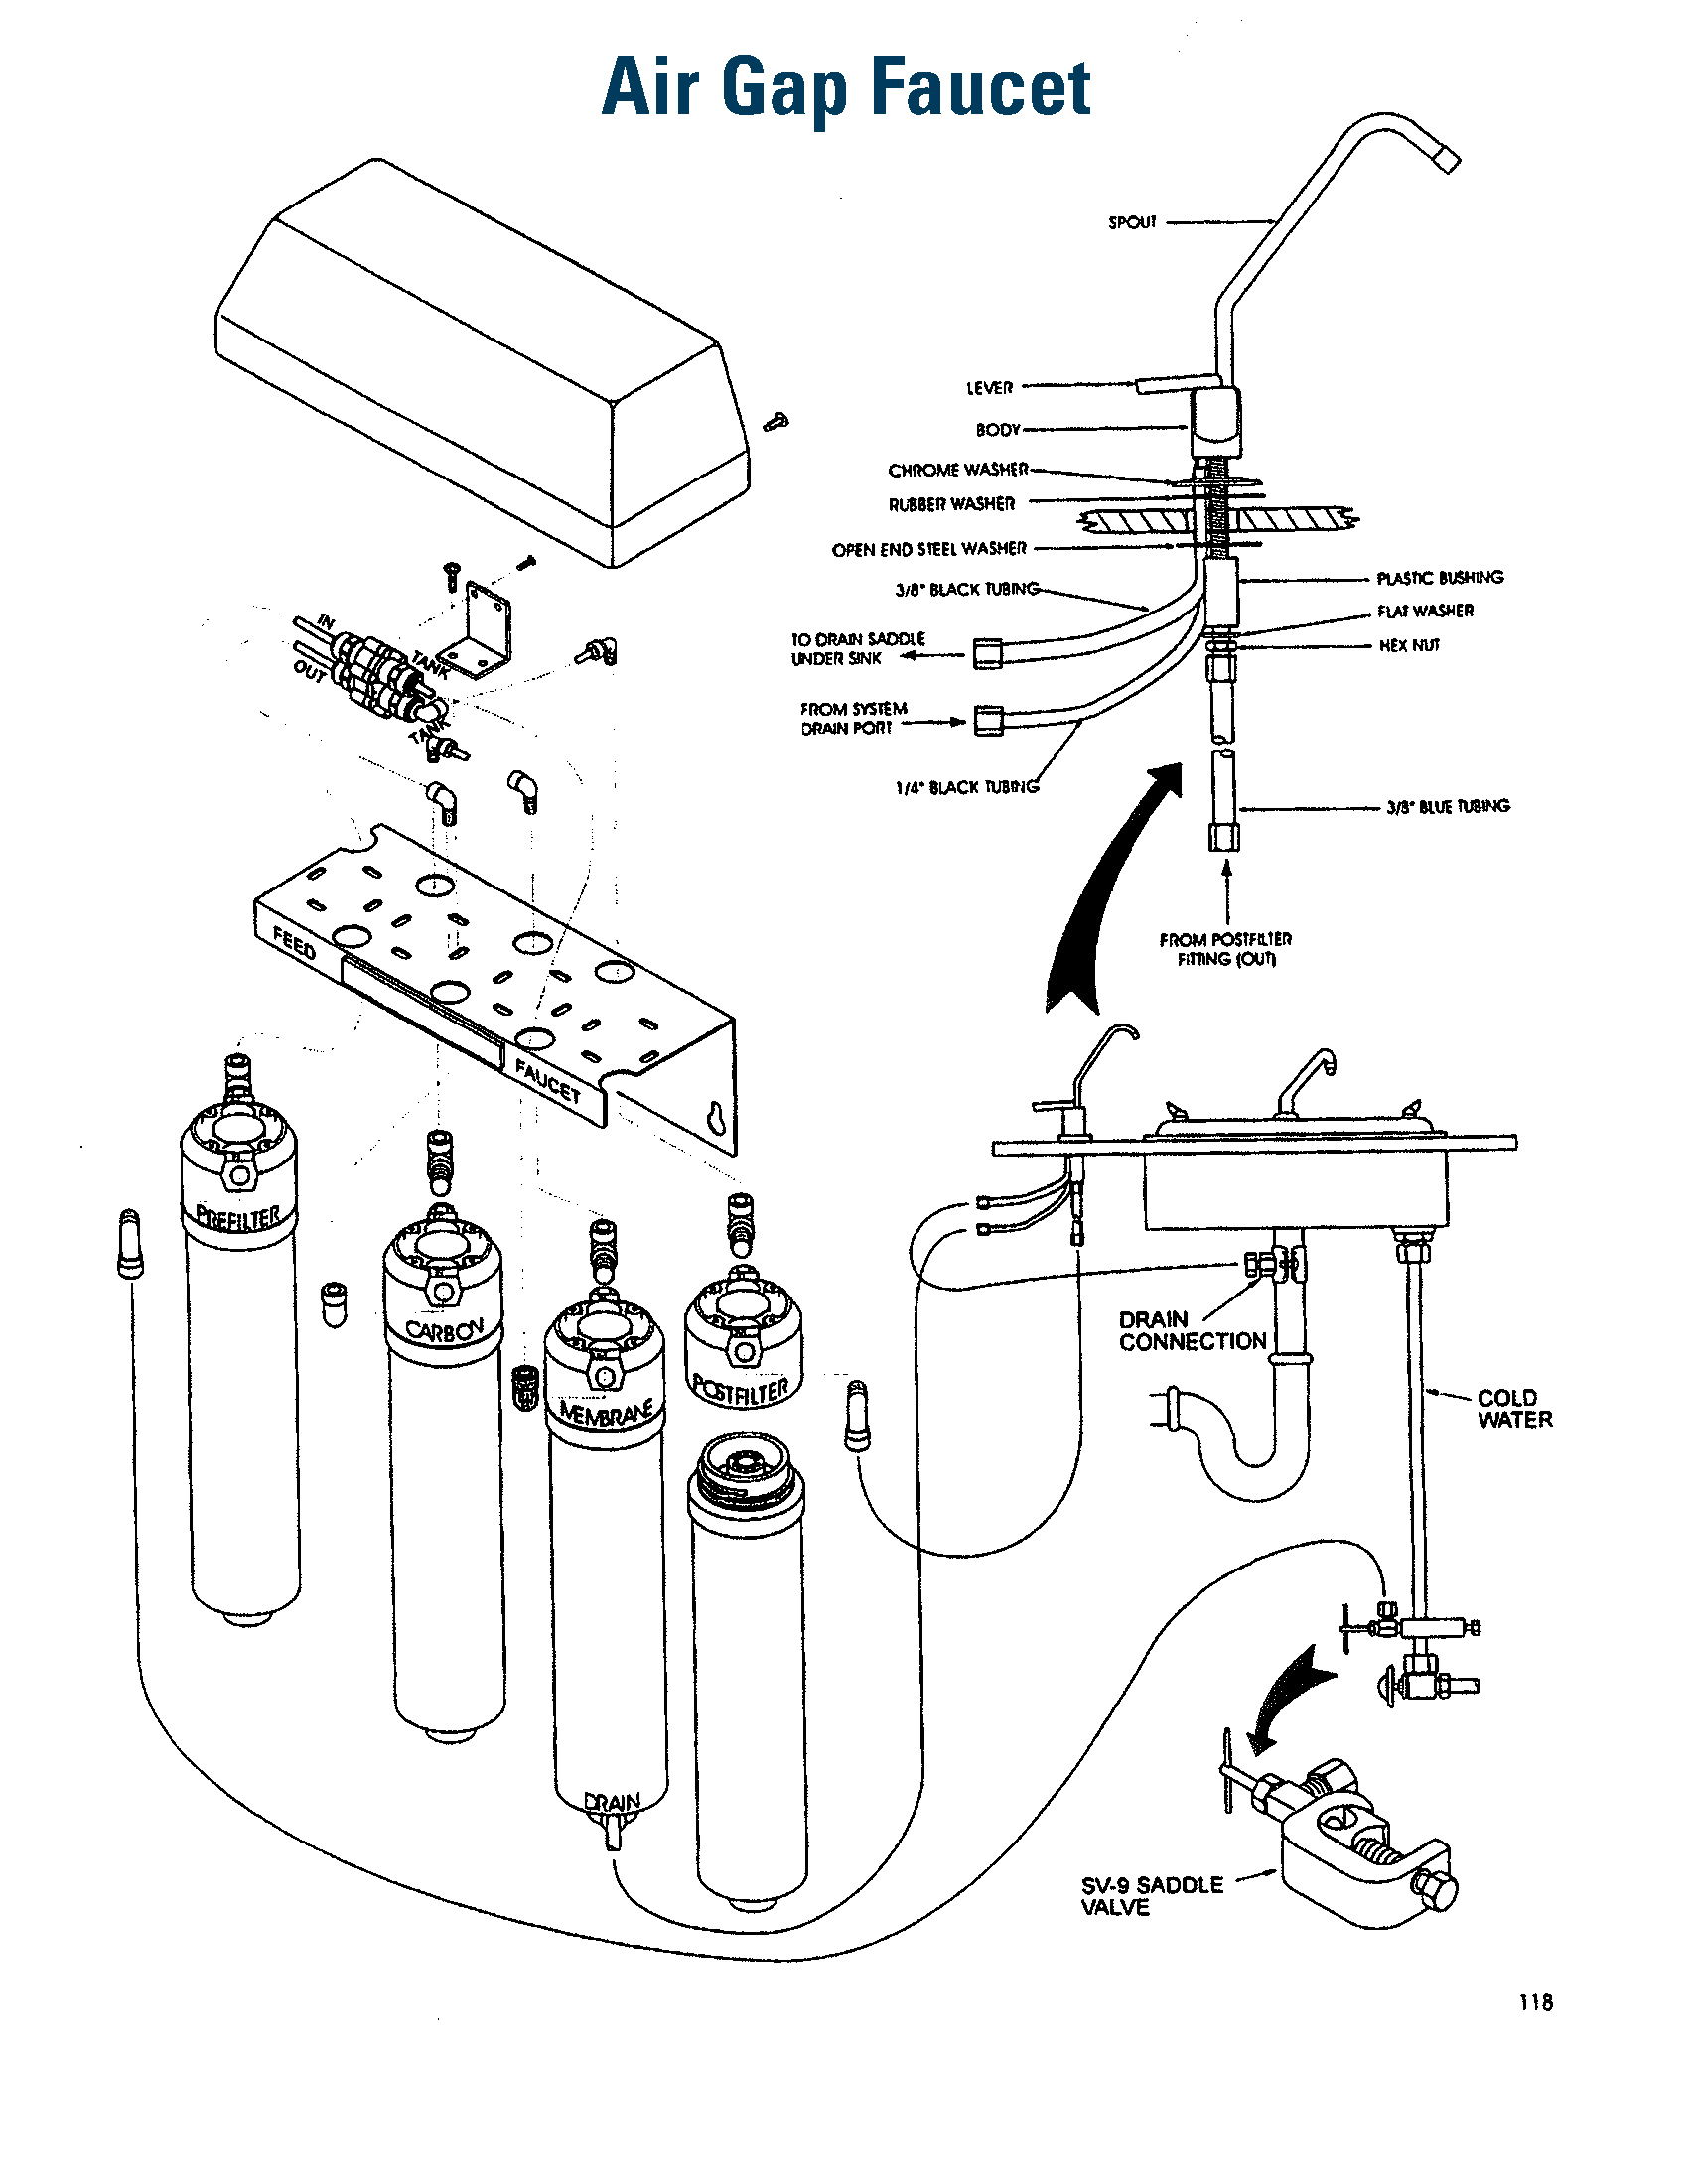 Ro Water Faucet Diagram Example Electrical Wiring Modine Pah36af Pdf Air Gap Vs Non Esp Products Rh Espwaterproducts Com Reverse Osmosis